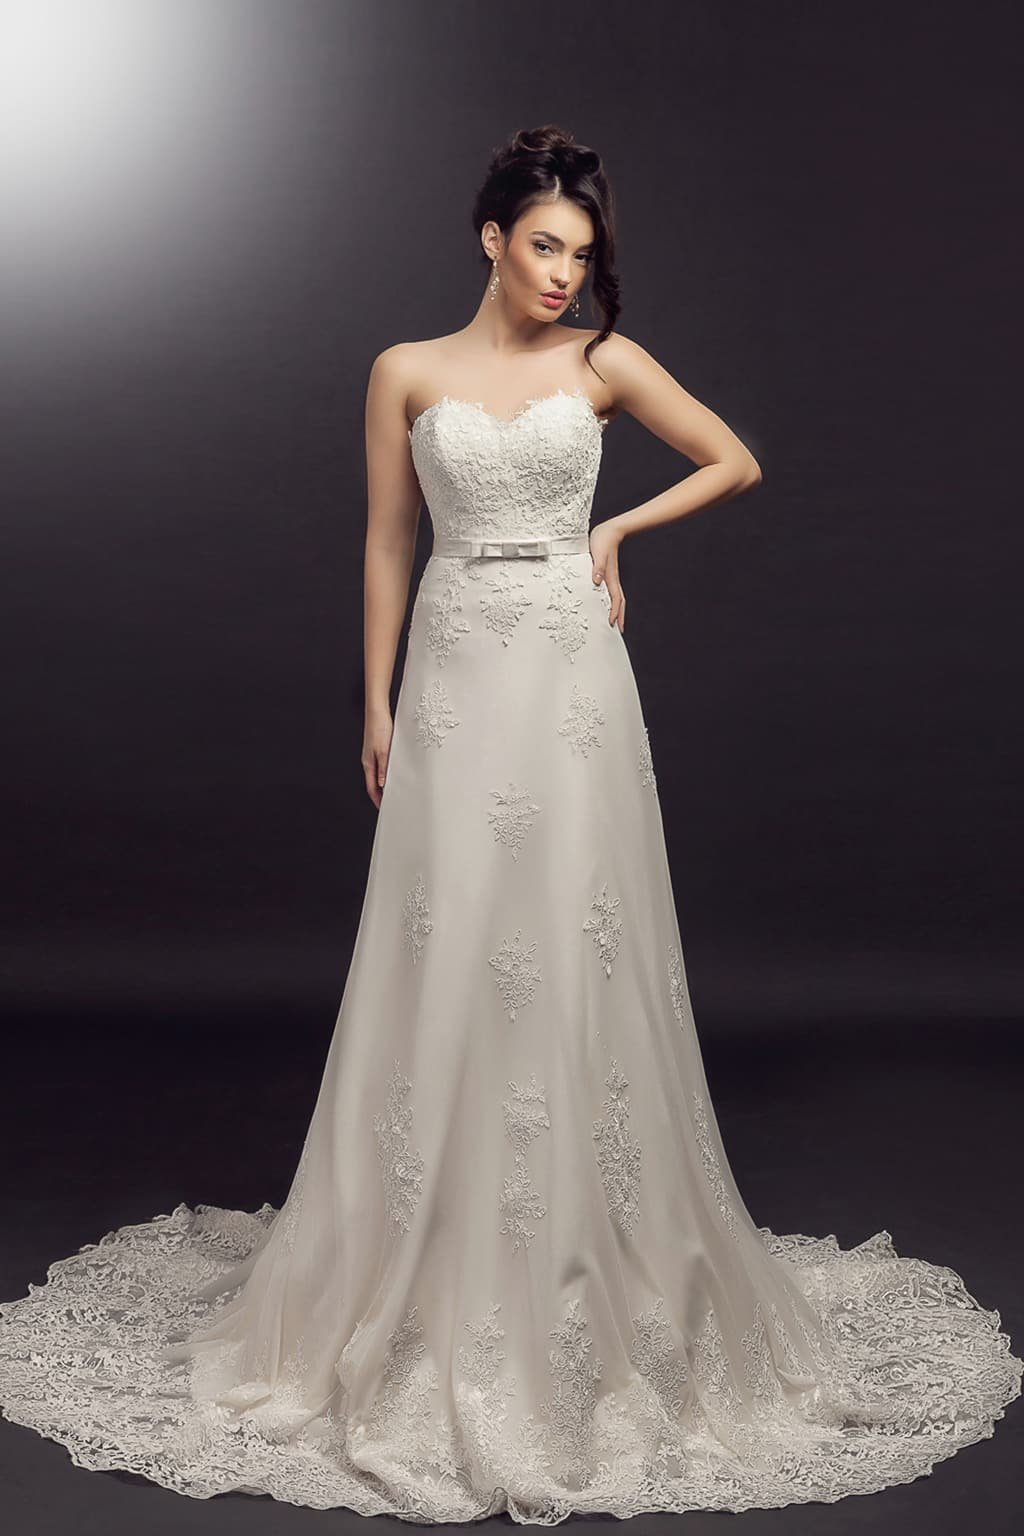 Paccia Model - Colectia Dreams - Adora Sposa